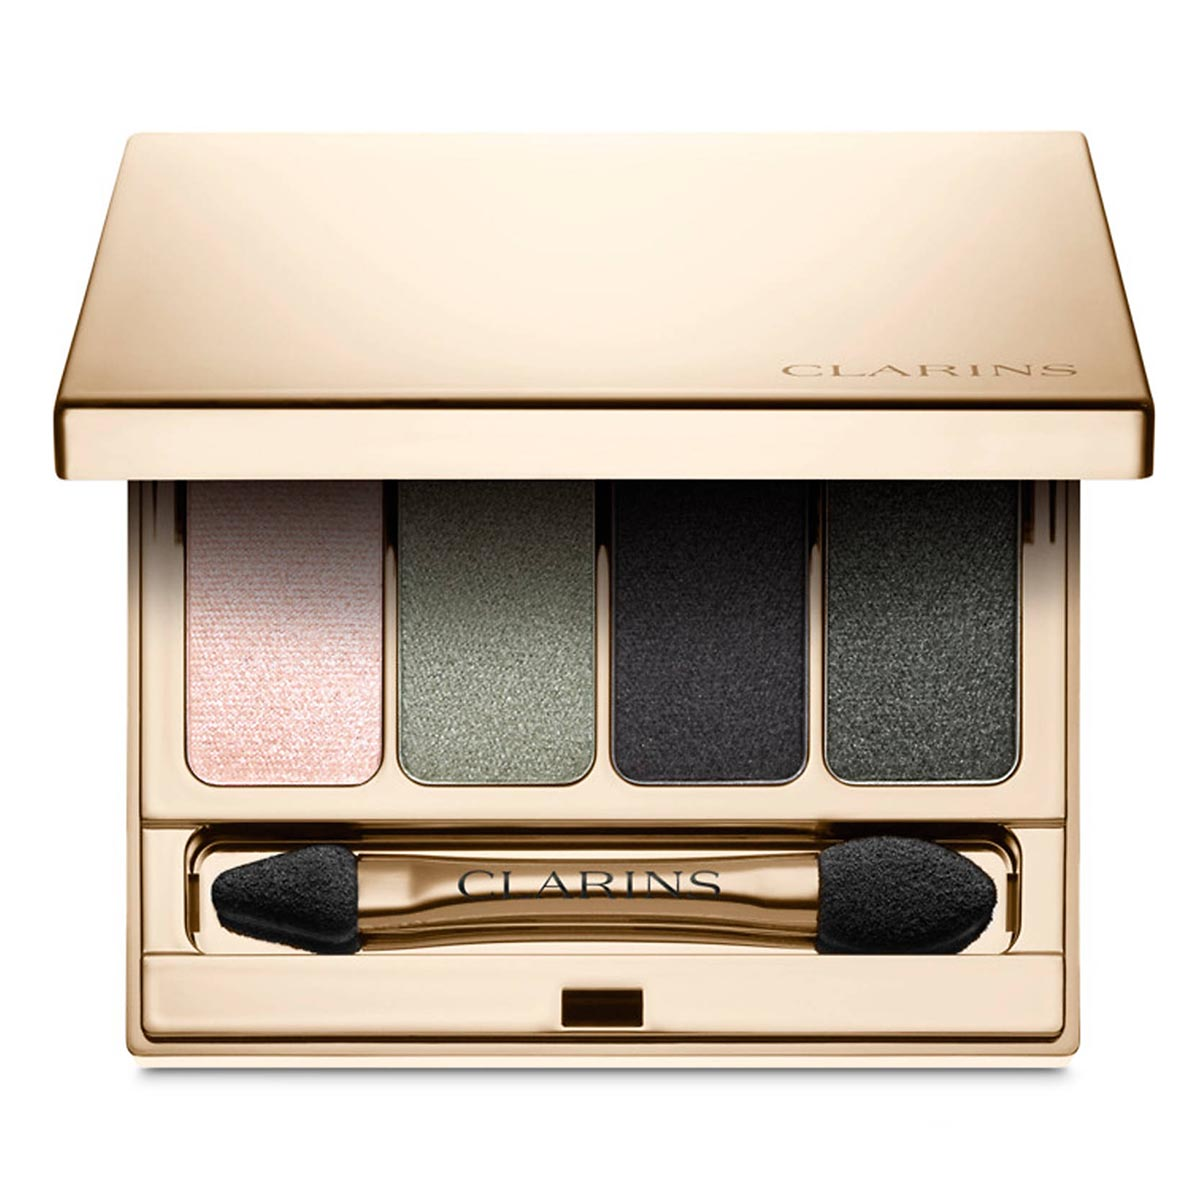 Clarins 4 colour eyeshadow palette 06